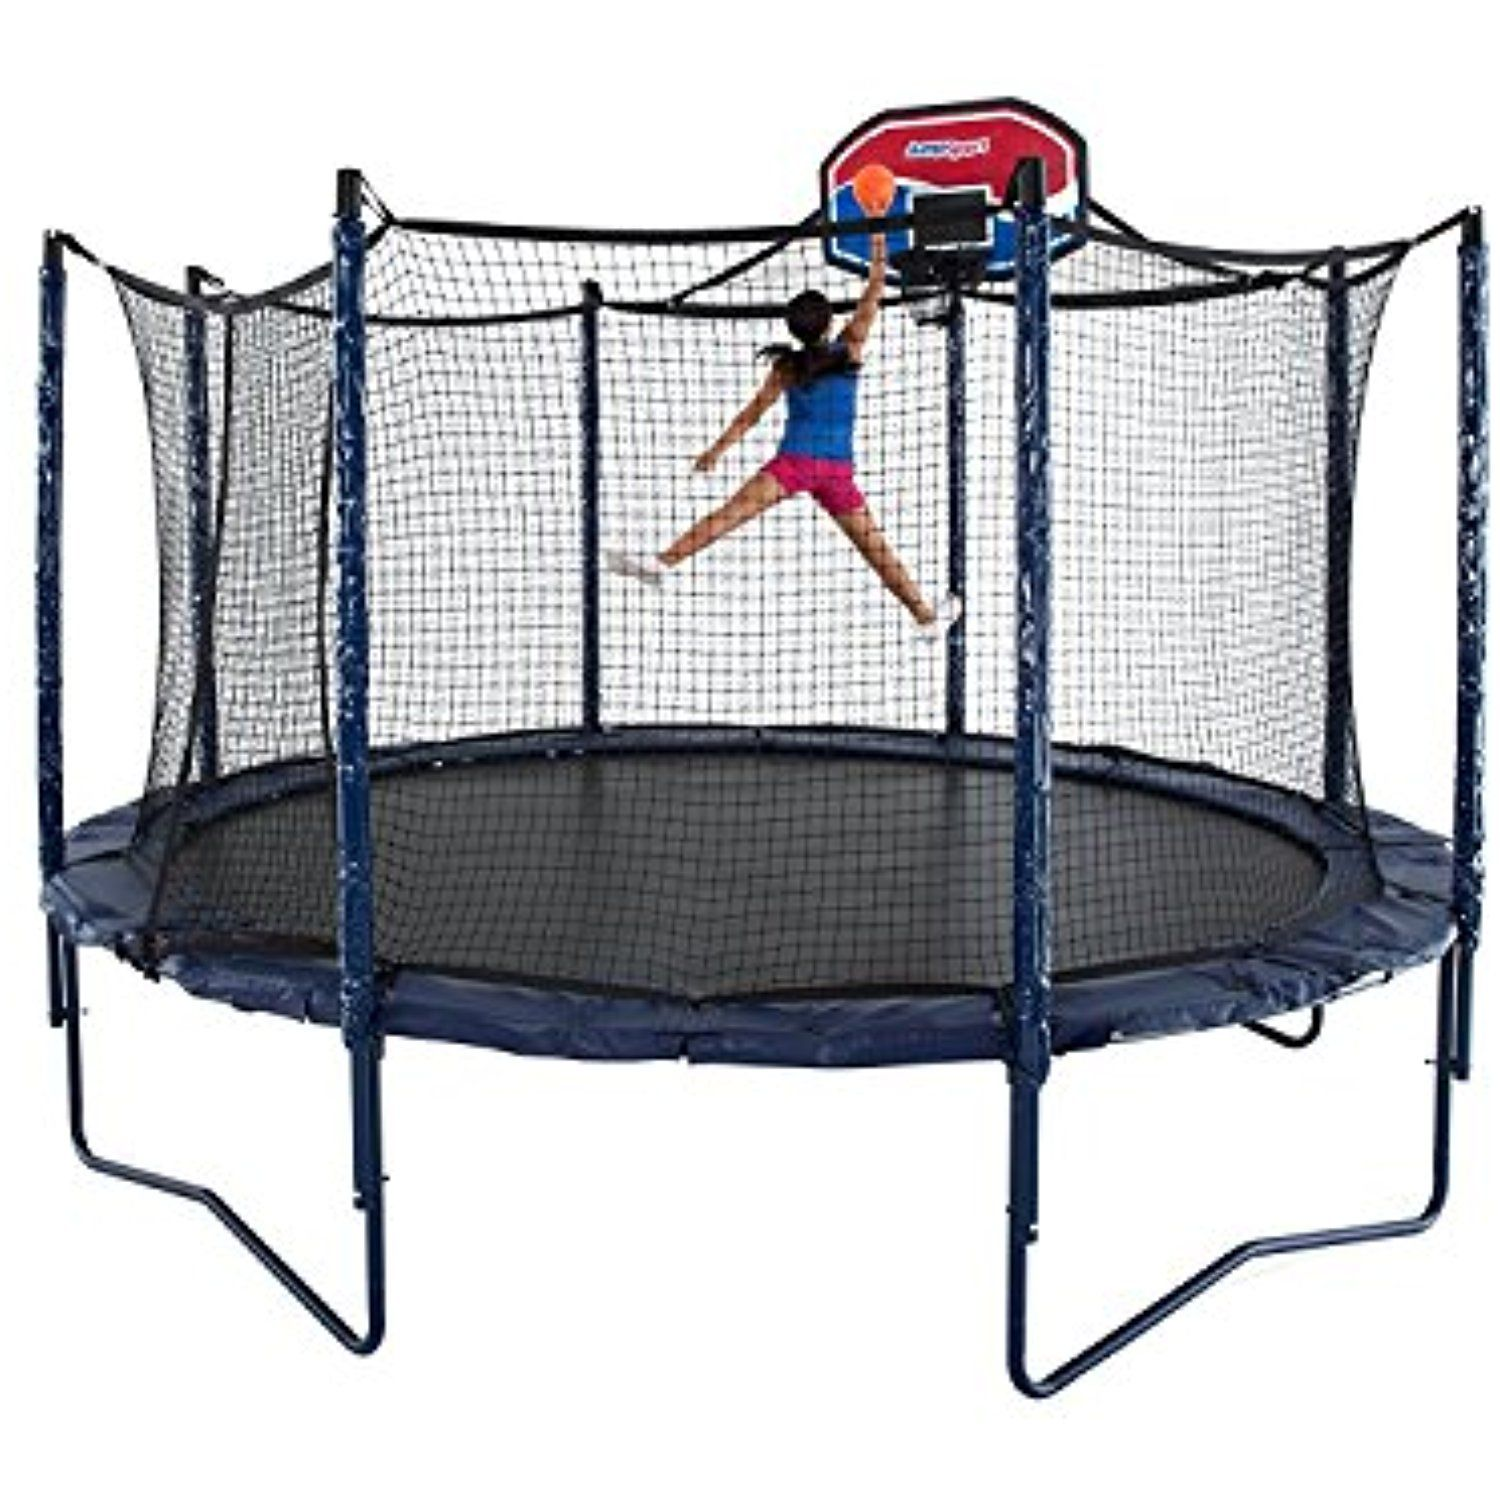 JumpSport Elite Trampoline with PowerBounce and Basketball